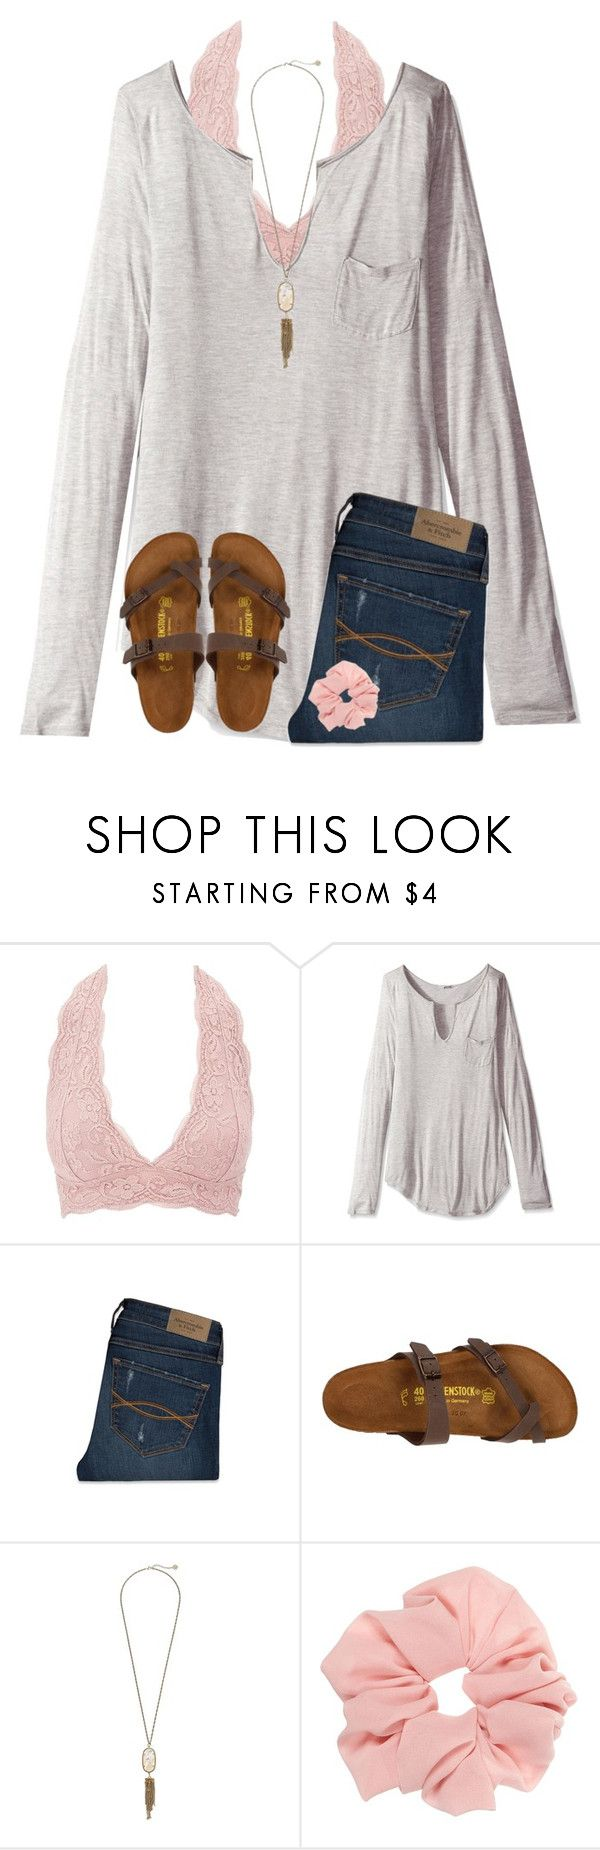 """""""Favorite trends from 2016 contest"""" by ponyboysgirlfriend ❤ liked on Polyvore featuring Charlotte Russe, LAmade, Abercrombie & Fitch, Birkenstock and Kendra Scott"""